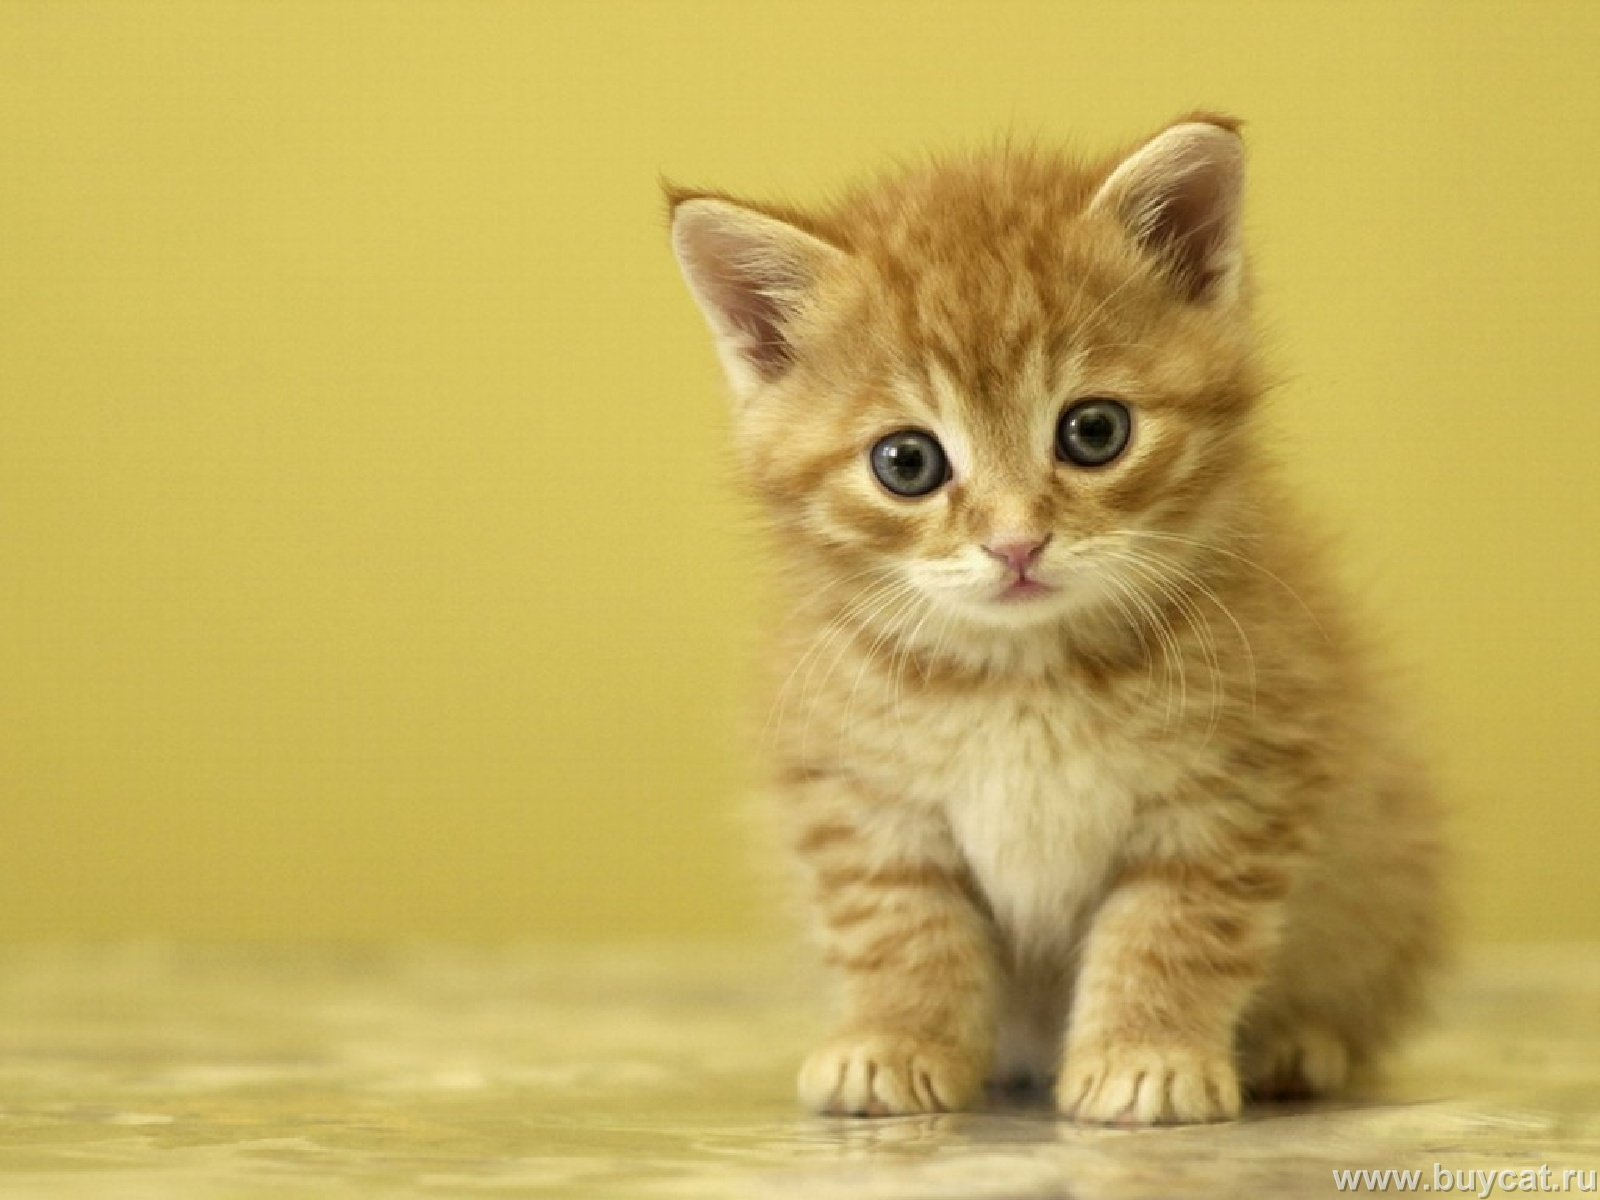 Funny And Cute Cat Pictures 3 Widescreen Wallpaper